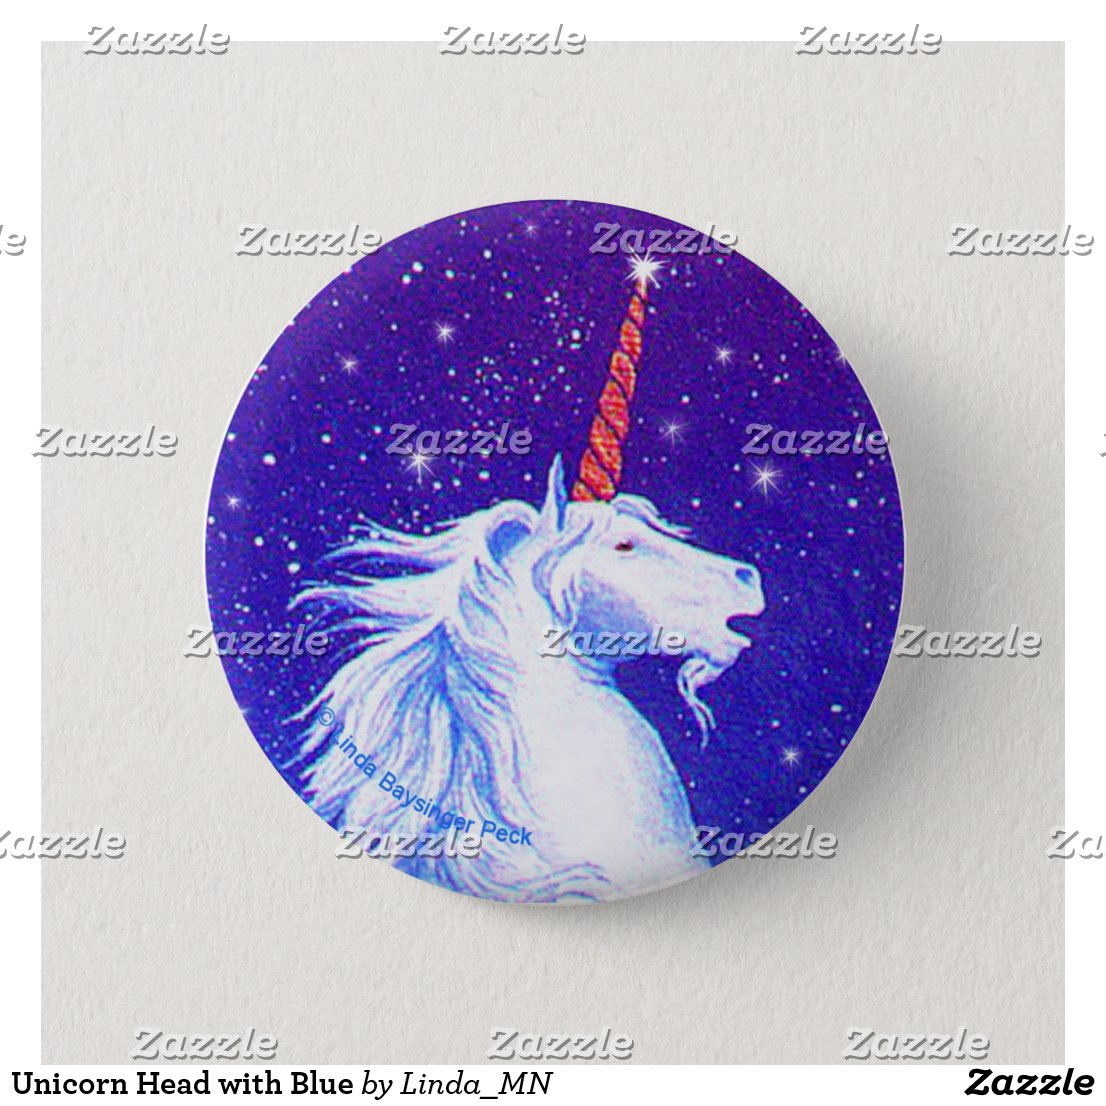 Unicorn Head with Blue